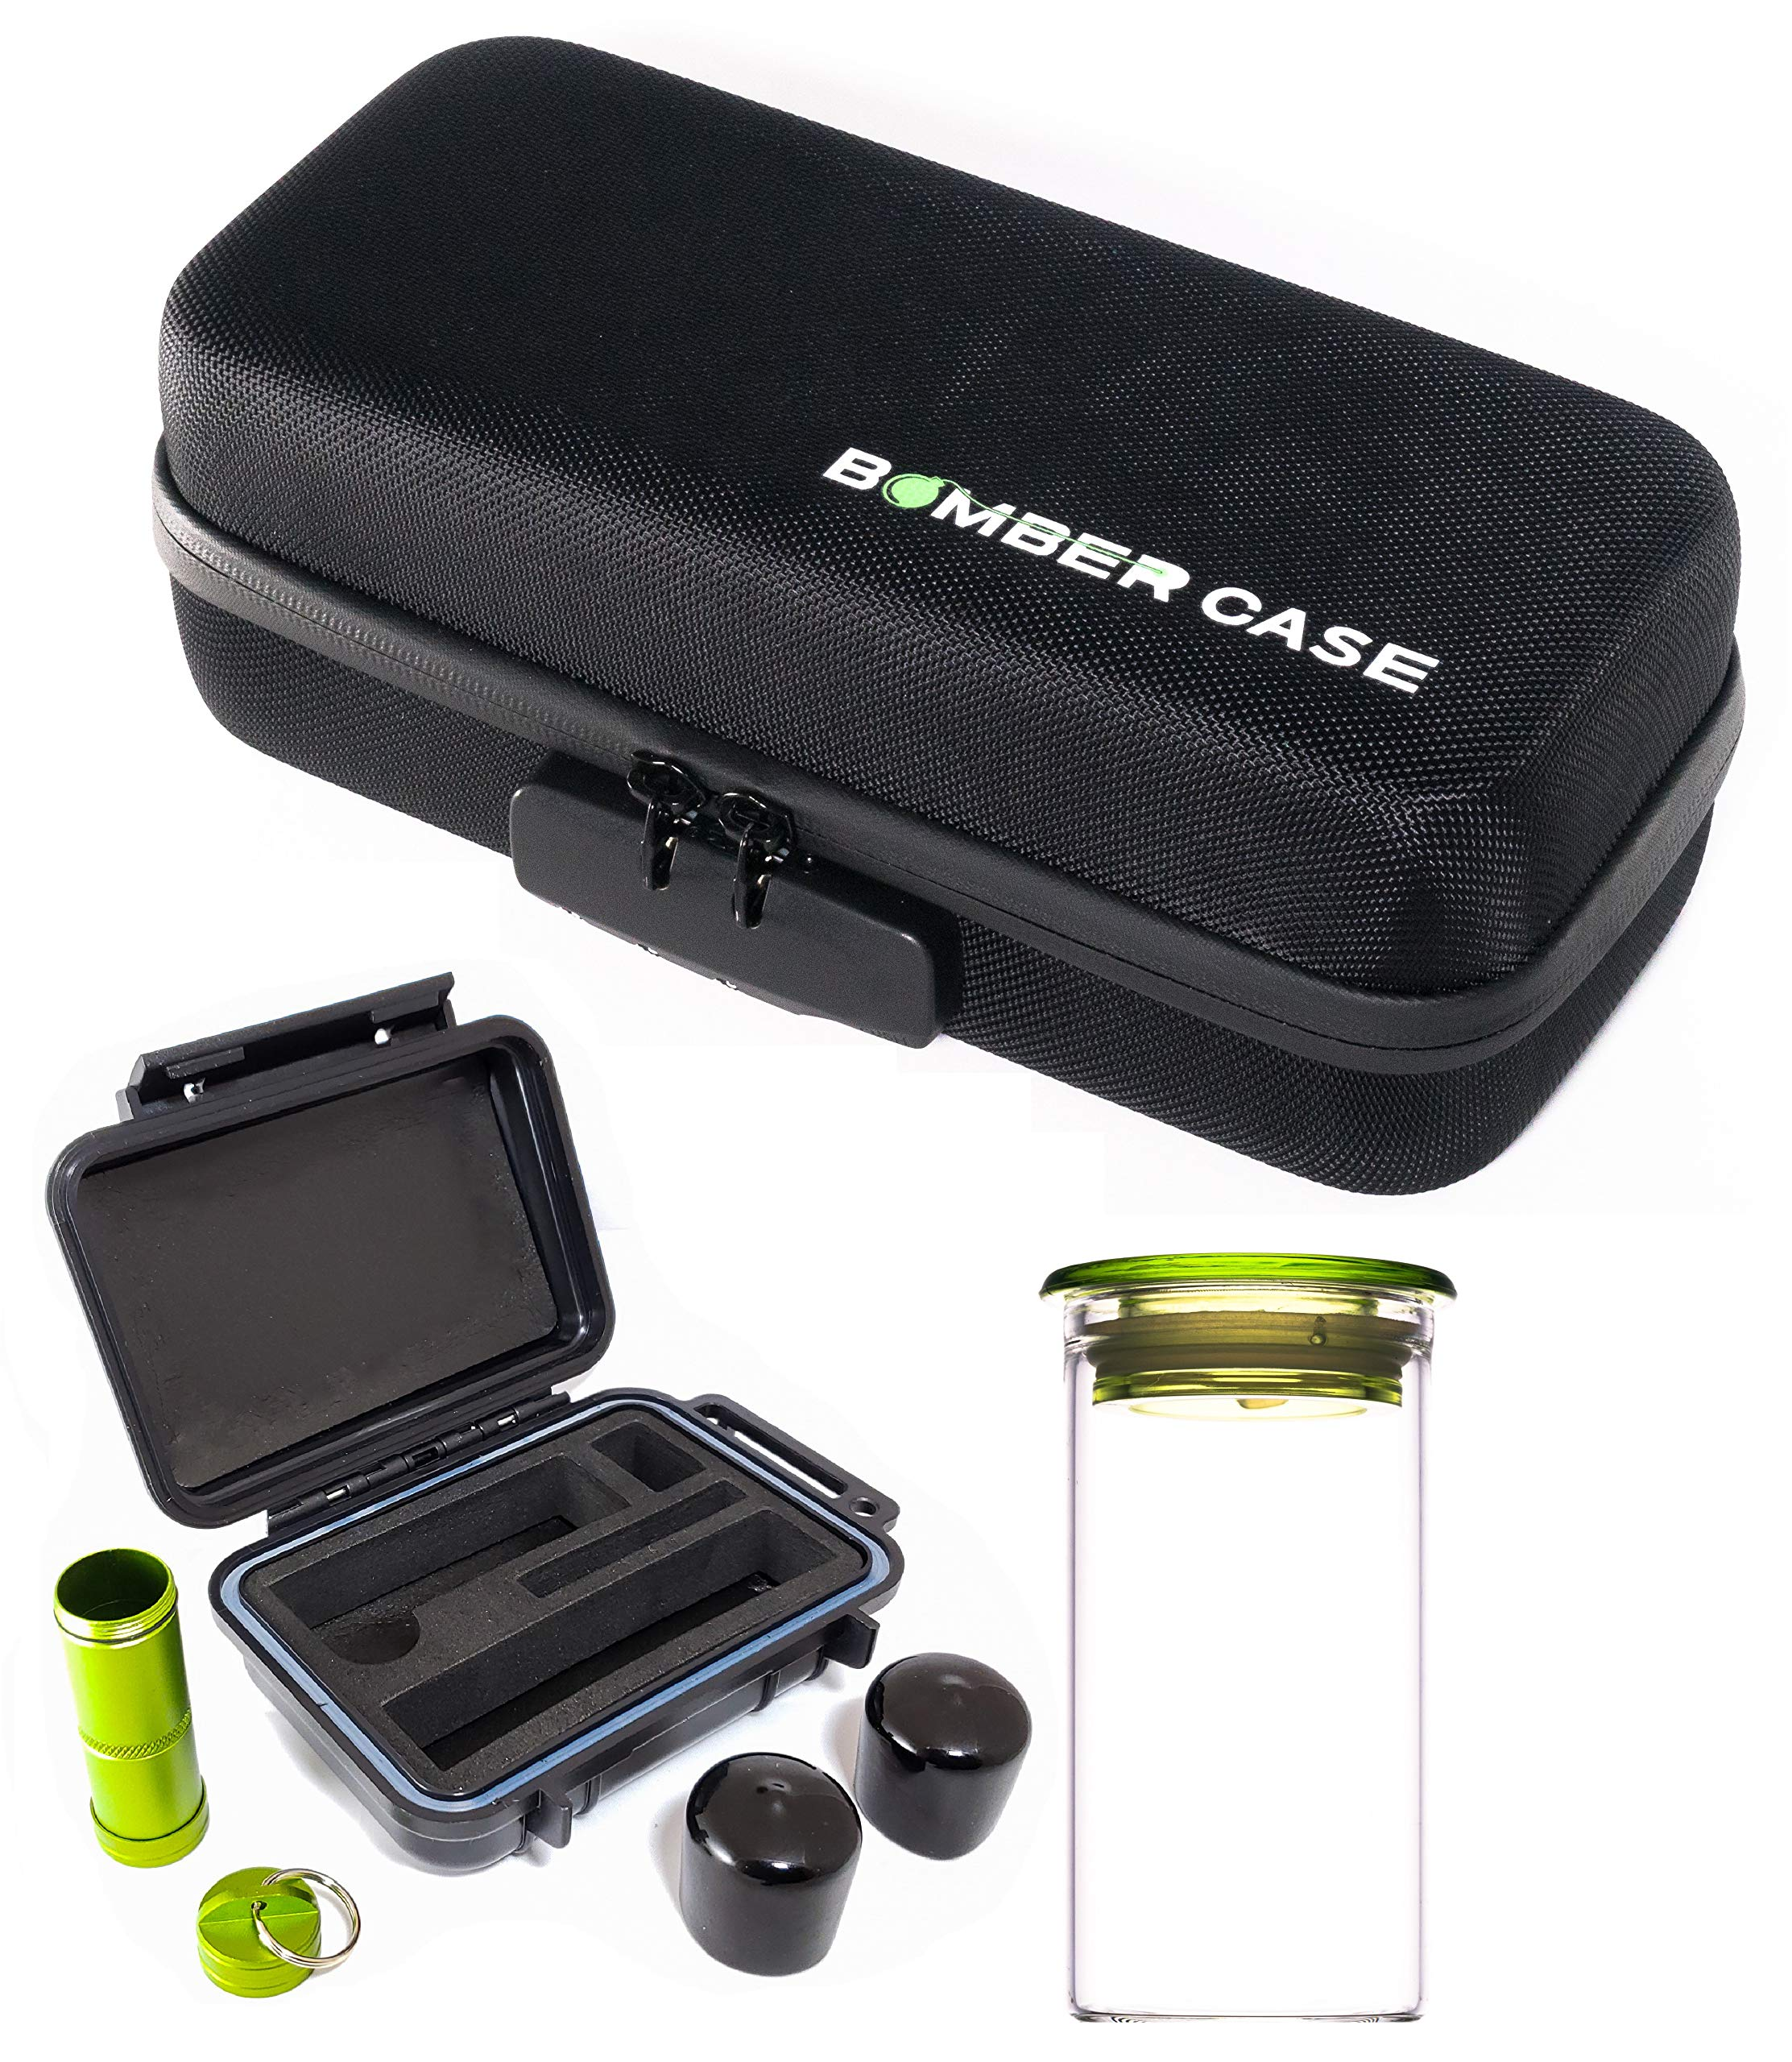 BOMBER CASE - Pax 2 & 3 Deluxe 6 Piece Kit with Large Locking Odor Proof Storage Case & Mini Smell Proof Carry Case, Glass Herb Jar, Bumper End Caps, Aluminum Material Bottle, Lockable Zipper - Black